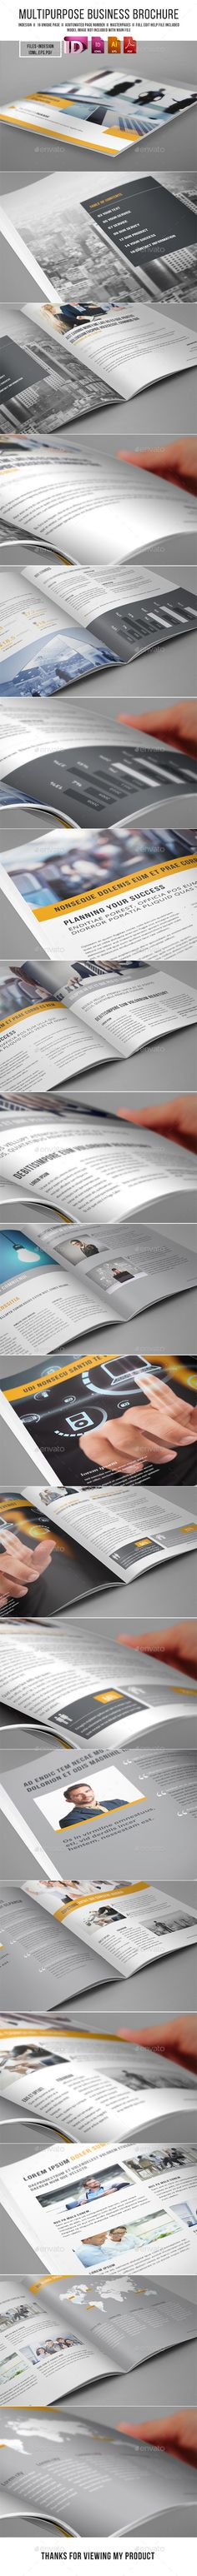 Brochure Brochure Layout, Corporate Brochure, Business Brochure, Corporate Business, Indesign Brochure Templates, Catalogue Layout, File Image, Information Graphics, Letter Logo